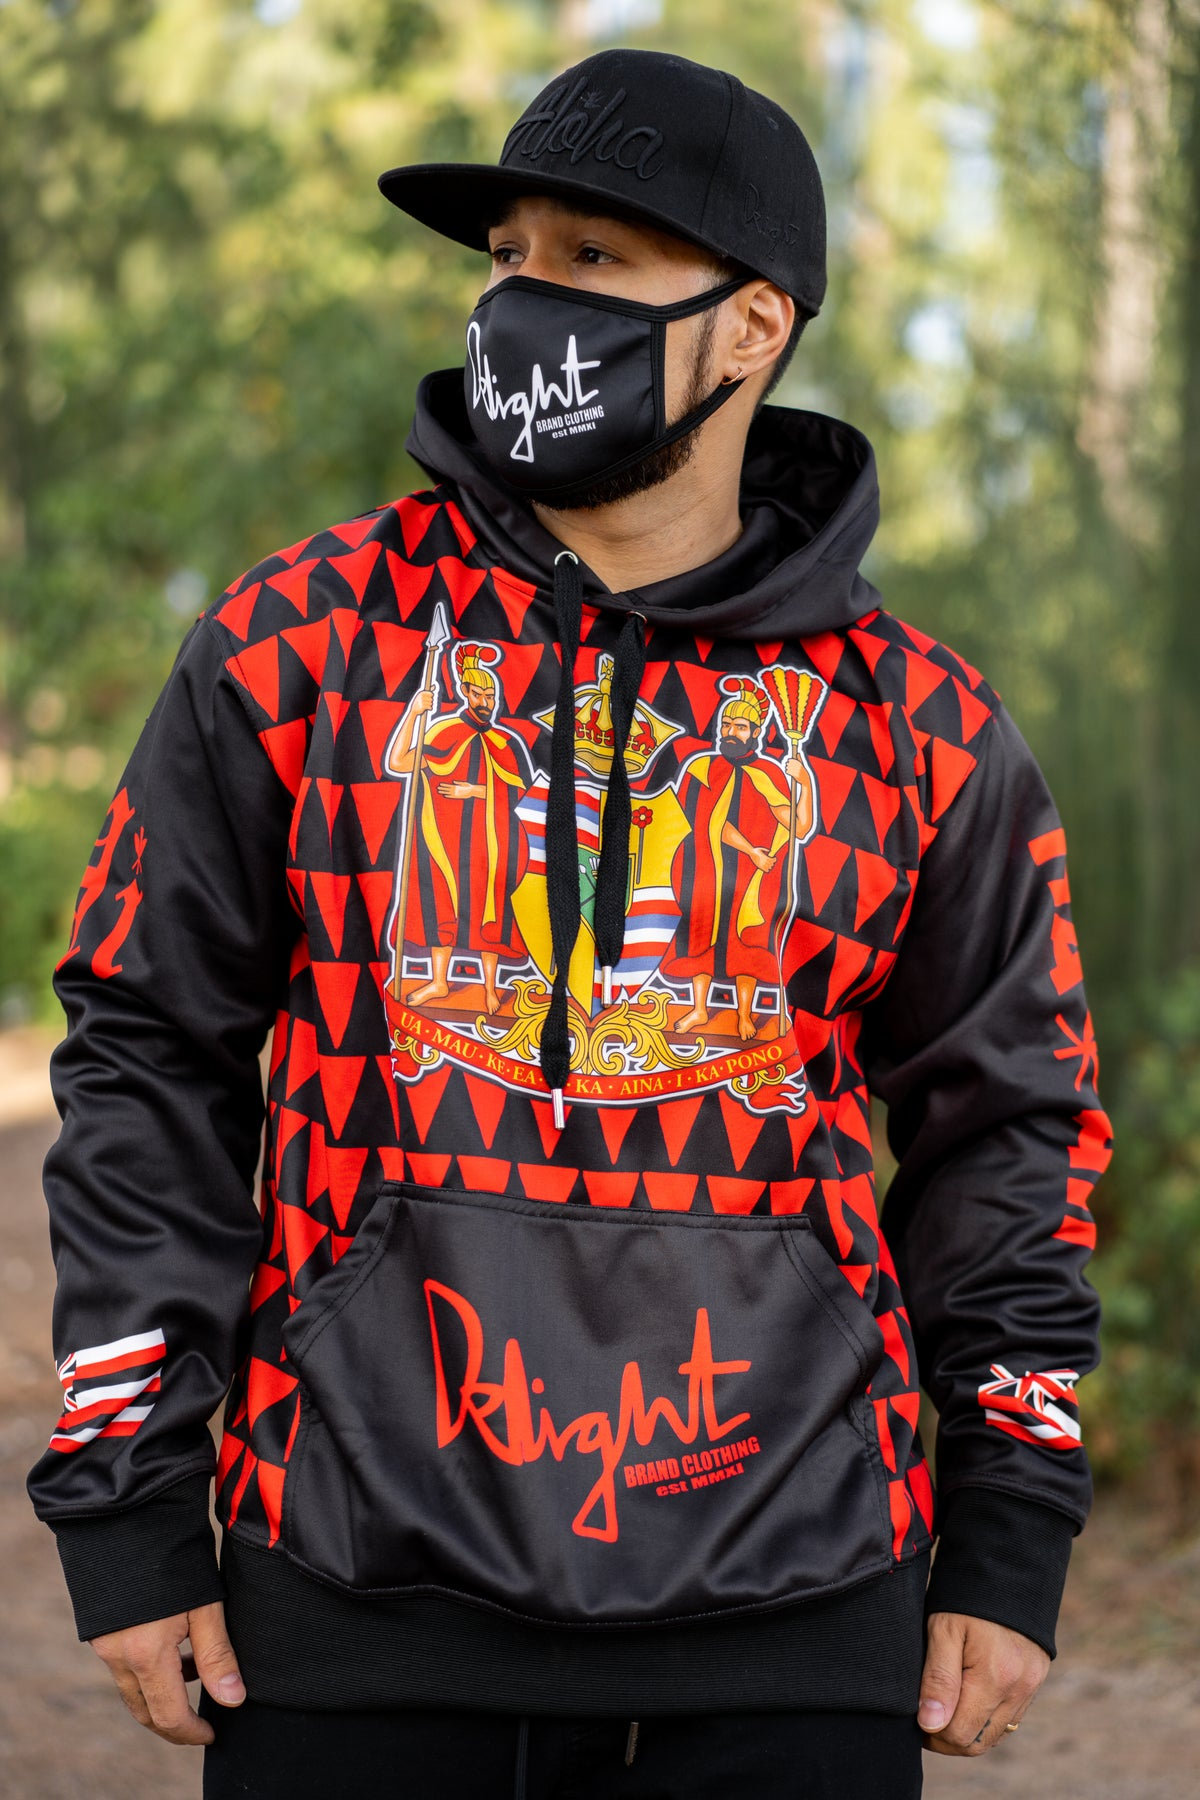 Delight Coat of Arms Black/Red Hoodie